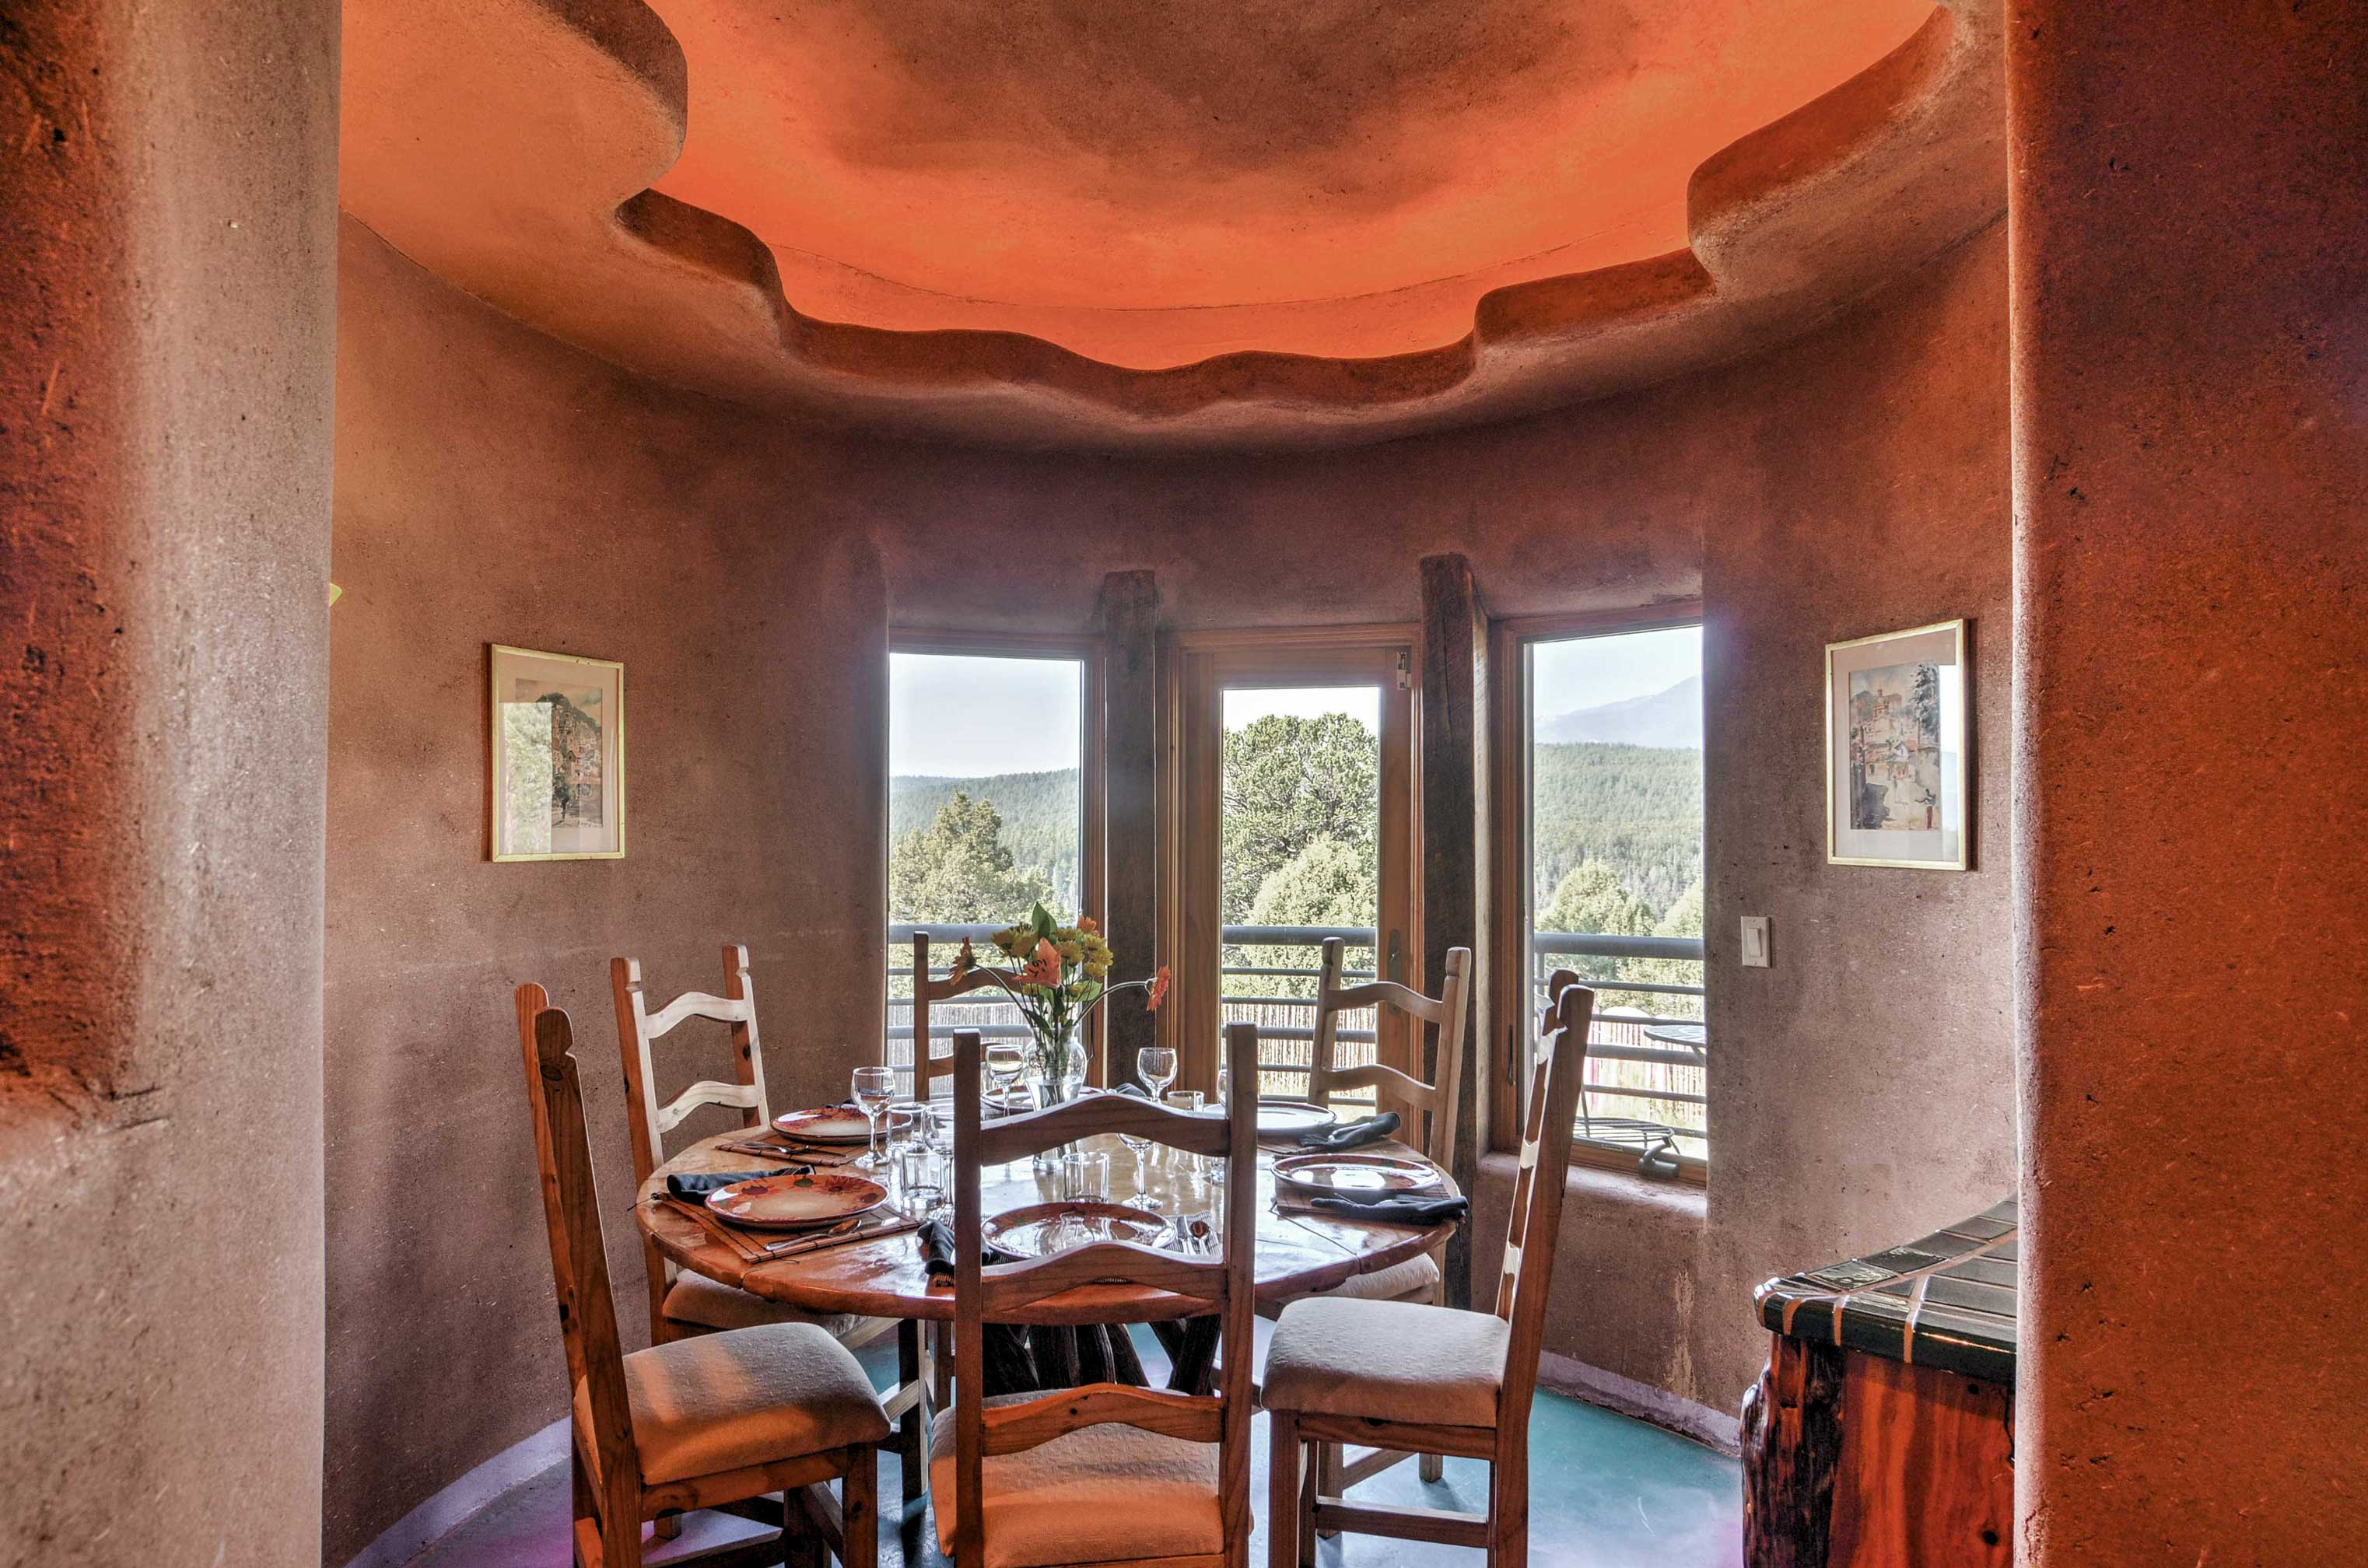 Enjoy morning coffee in the charming breakfast nook.